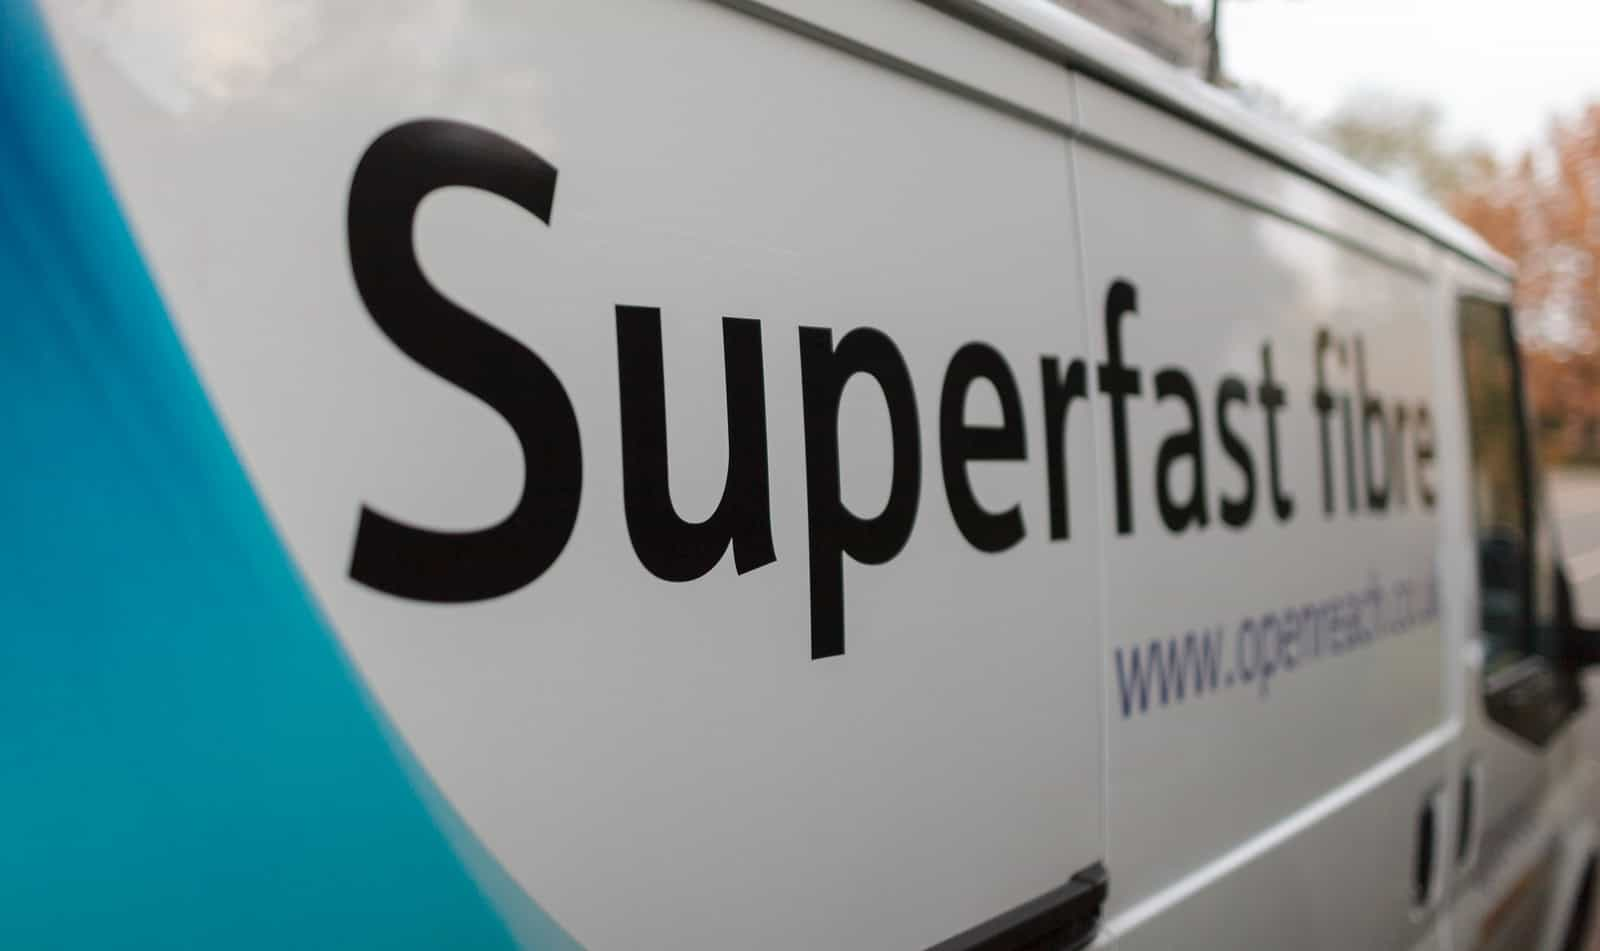 Superfast fibre